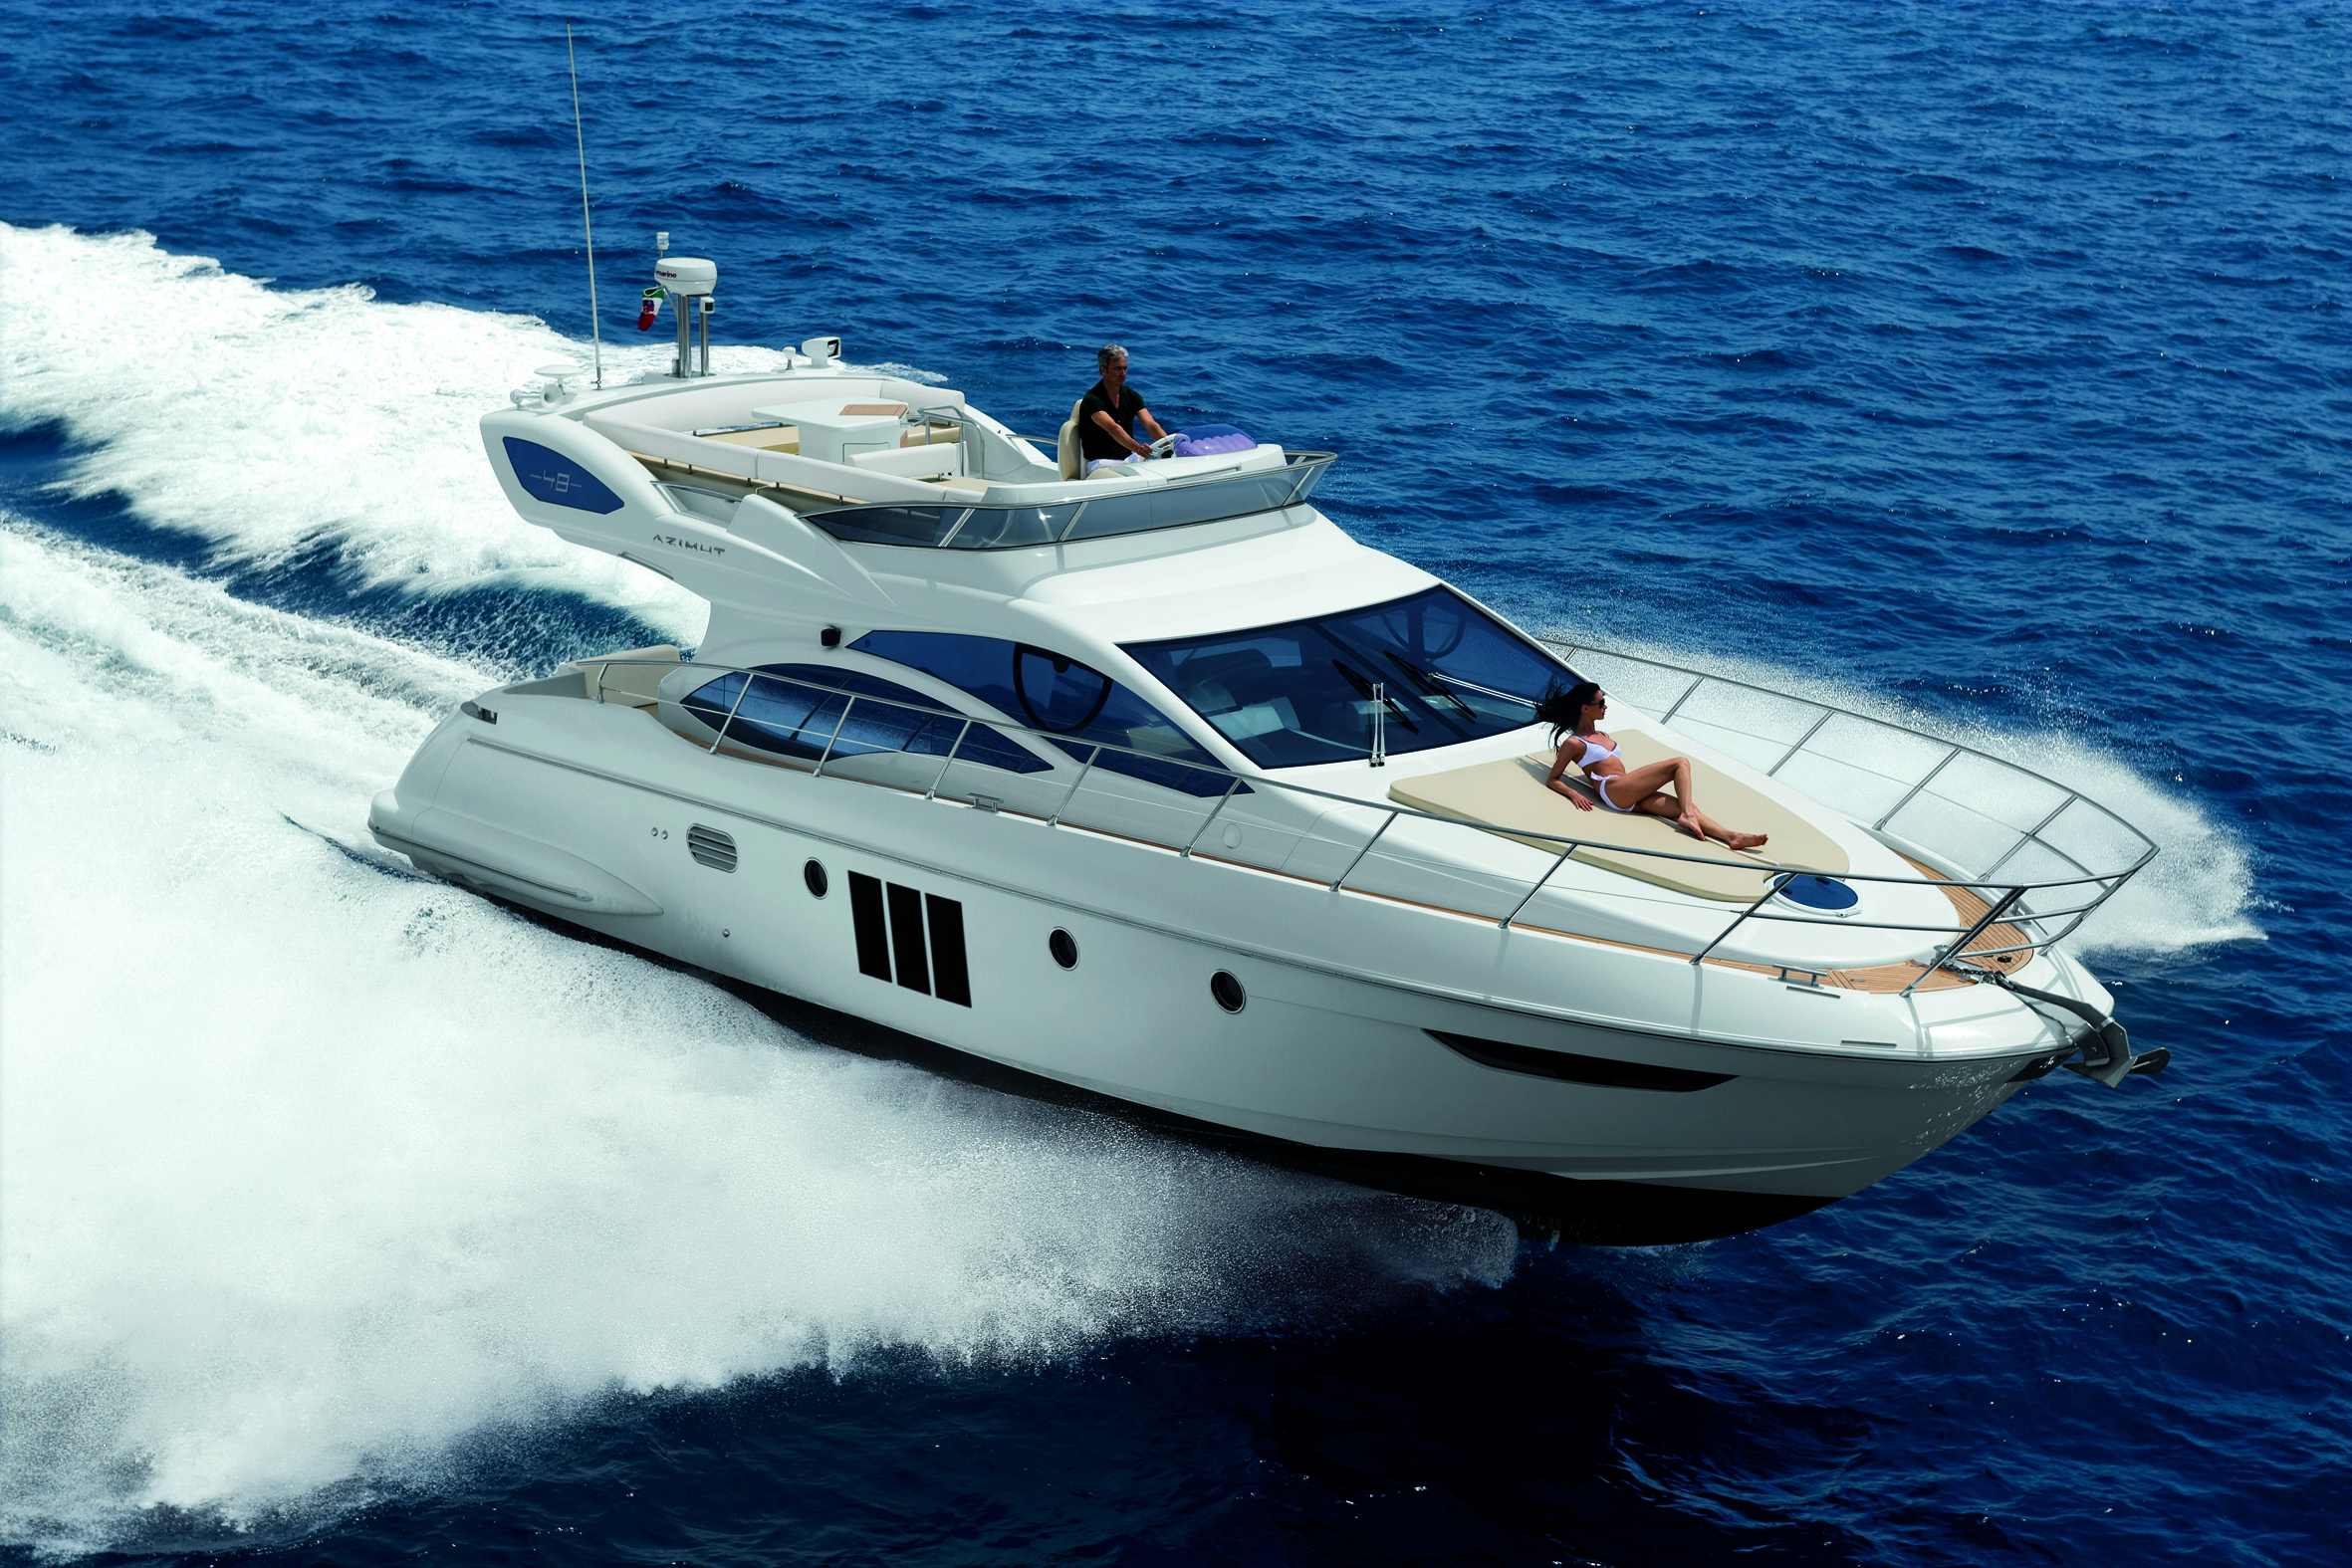 Evermarine yacht listings evermarine s a yacht listings - Fotos de yates ...